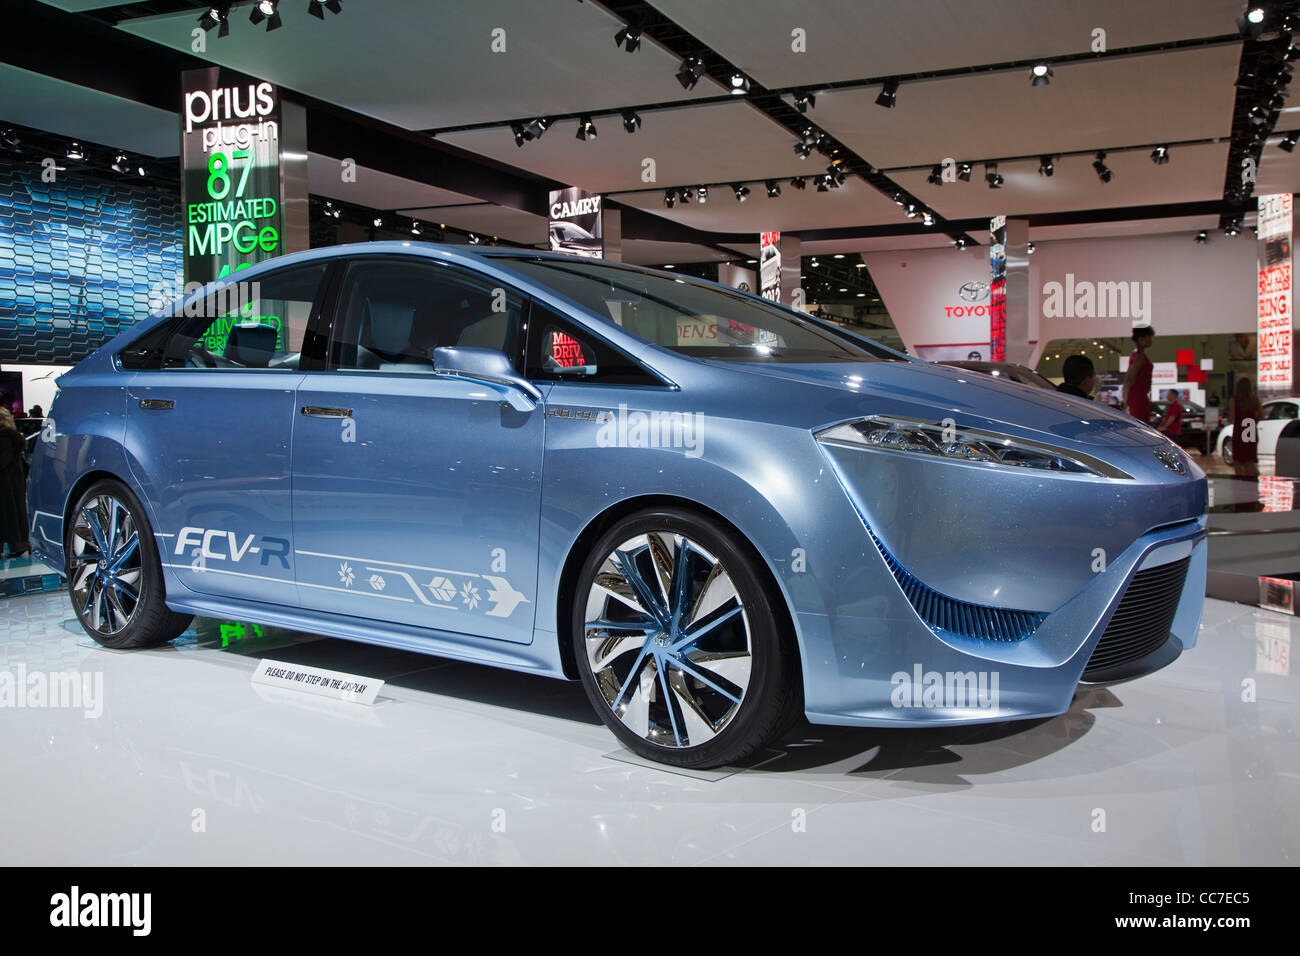 Toyota FCV-R hydrogen fuel cell vehicle Stock Photo